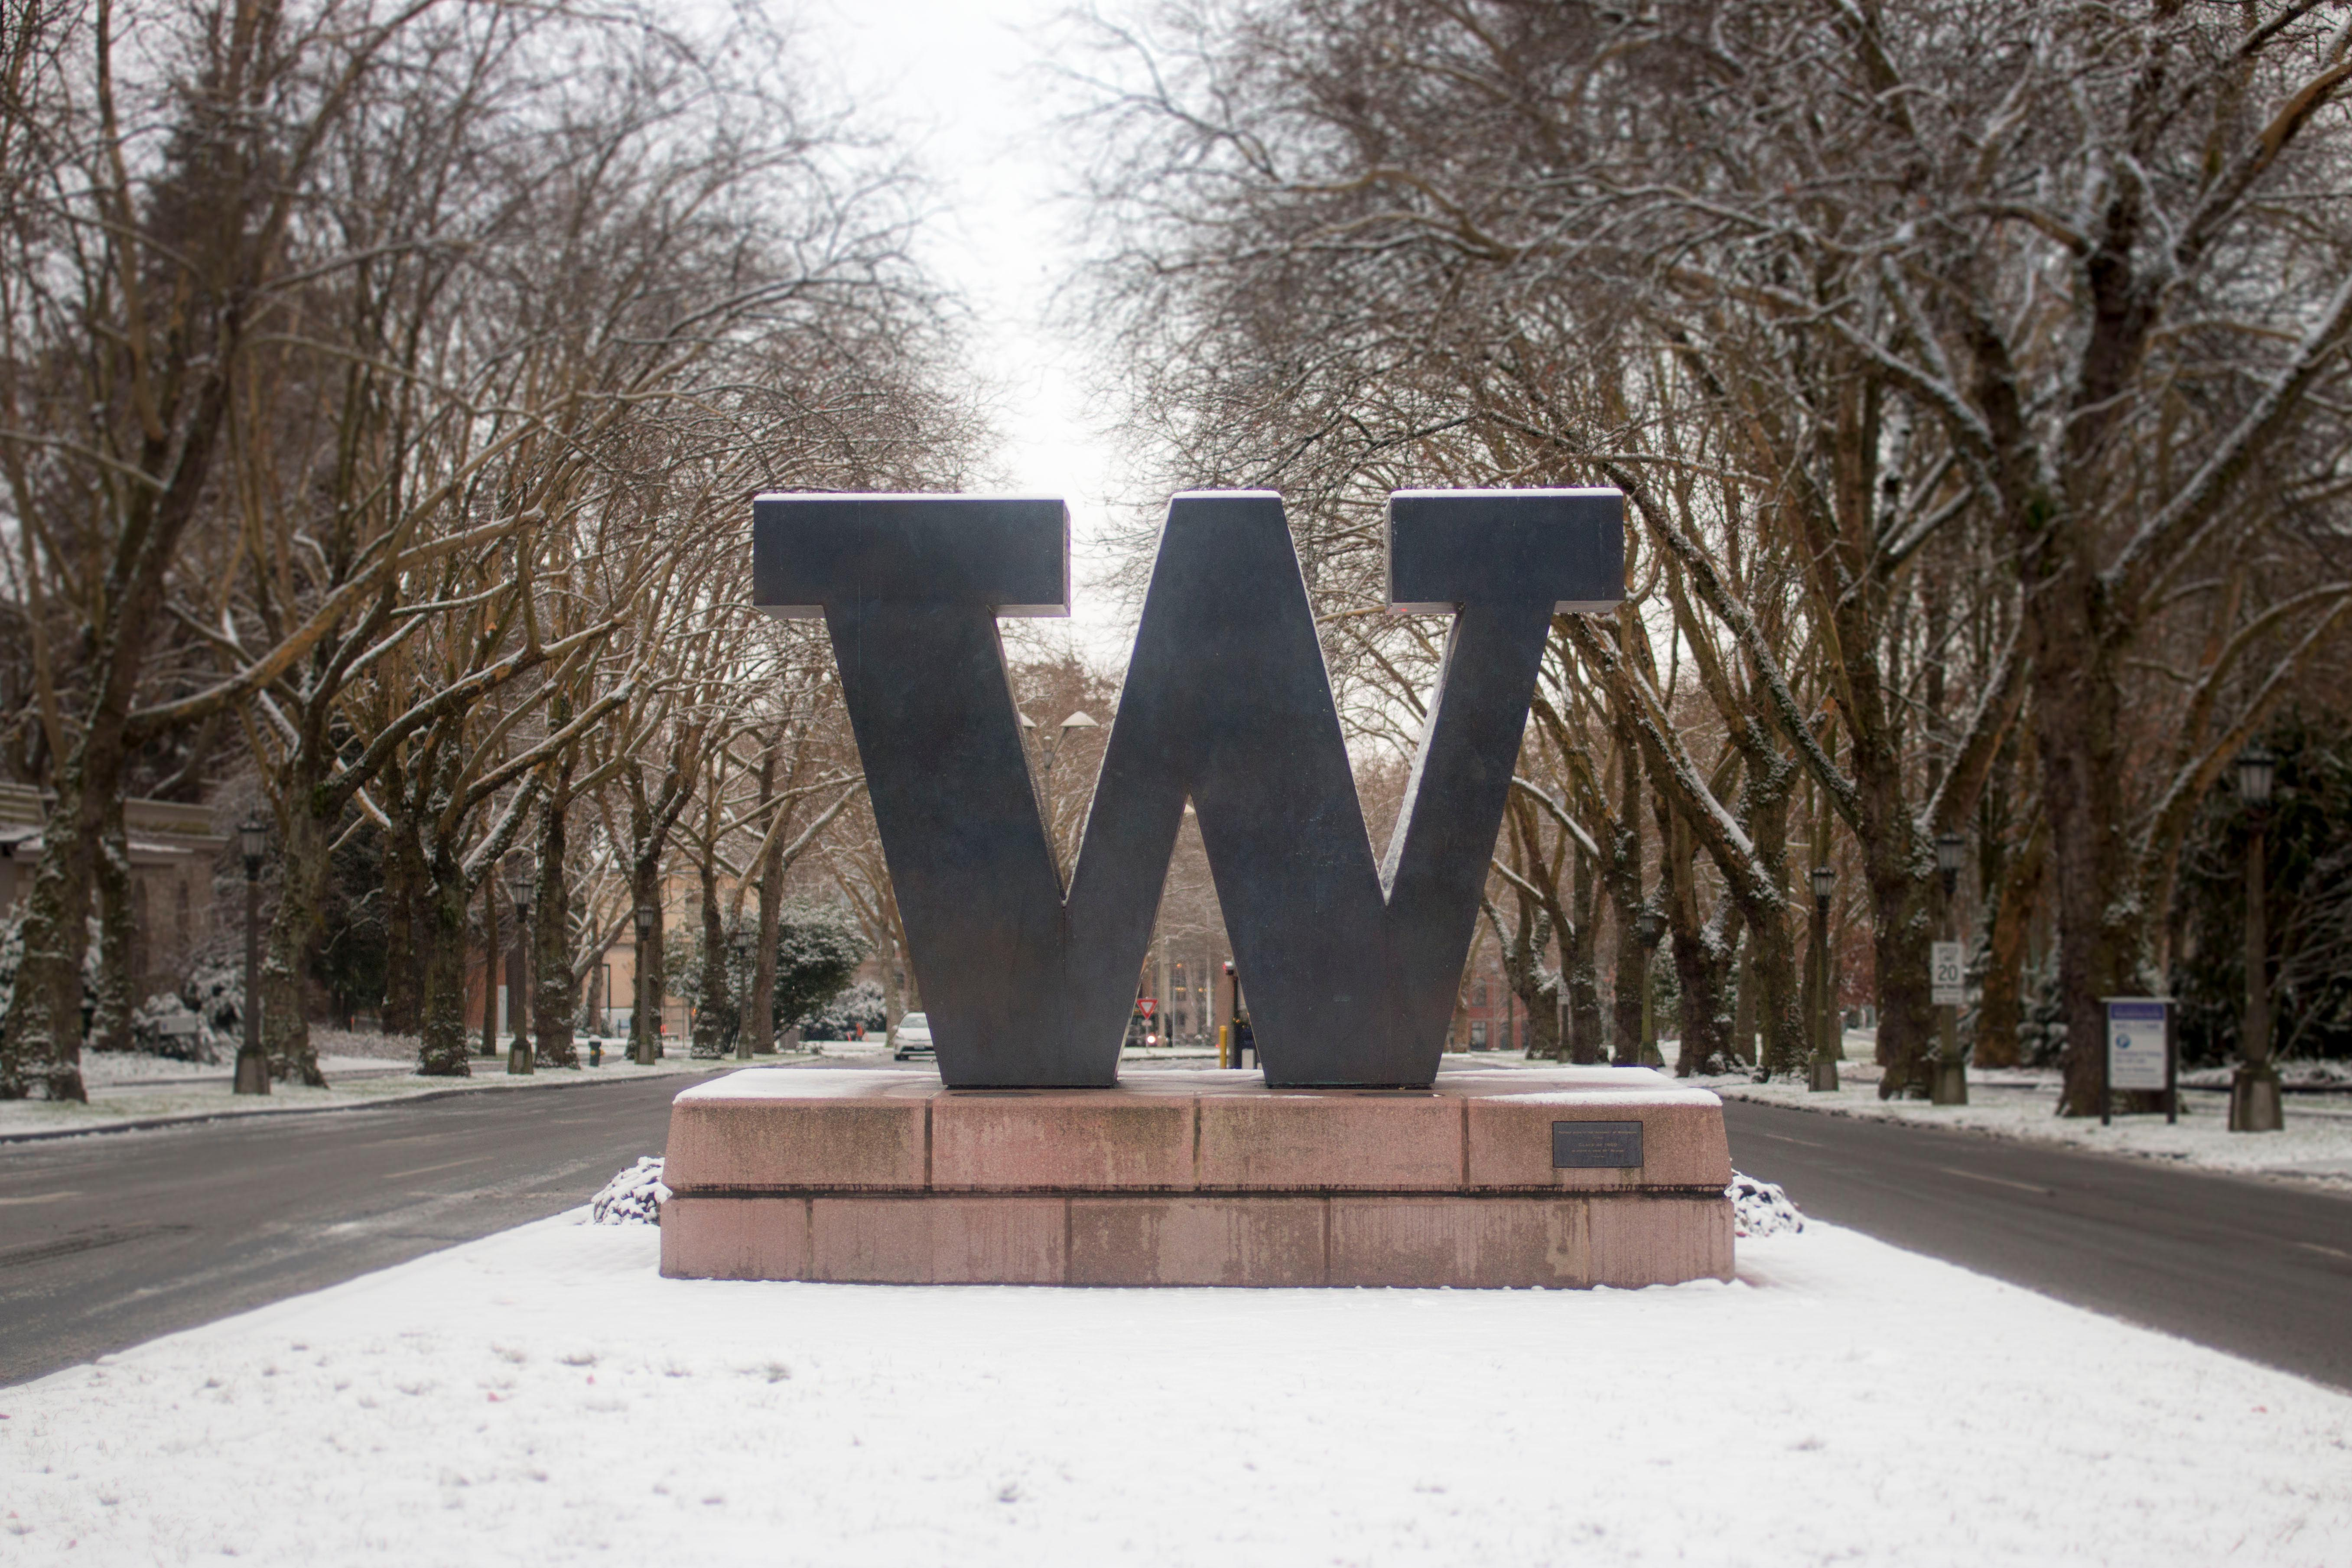 Snowy entrance to UW Seattle campus